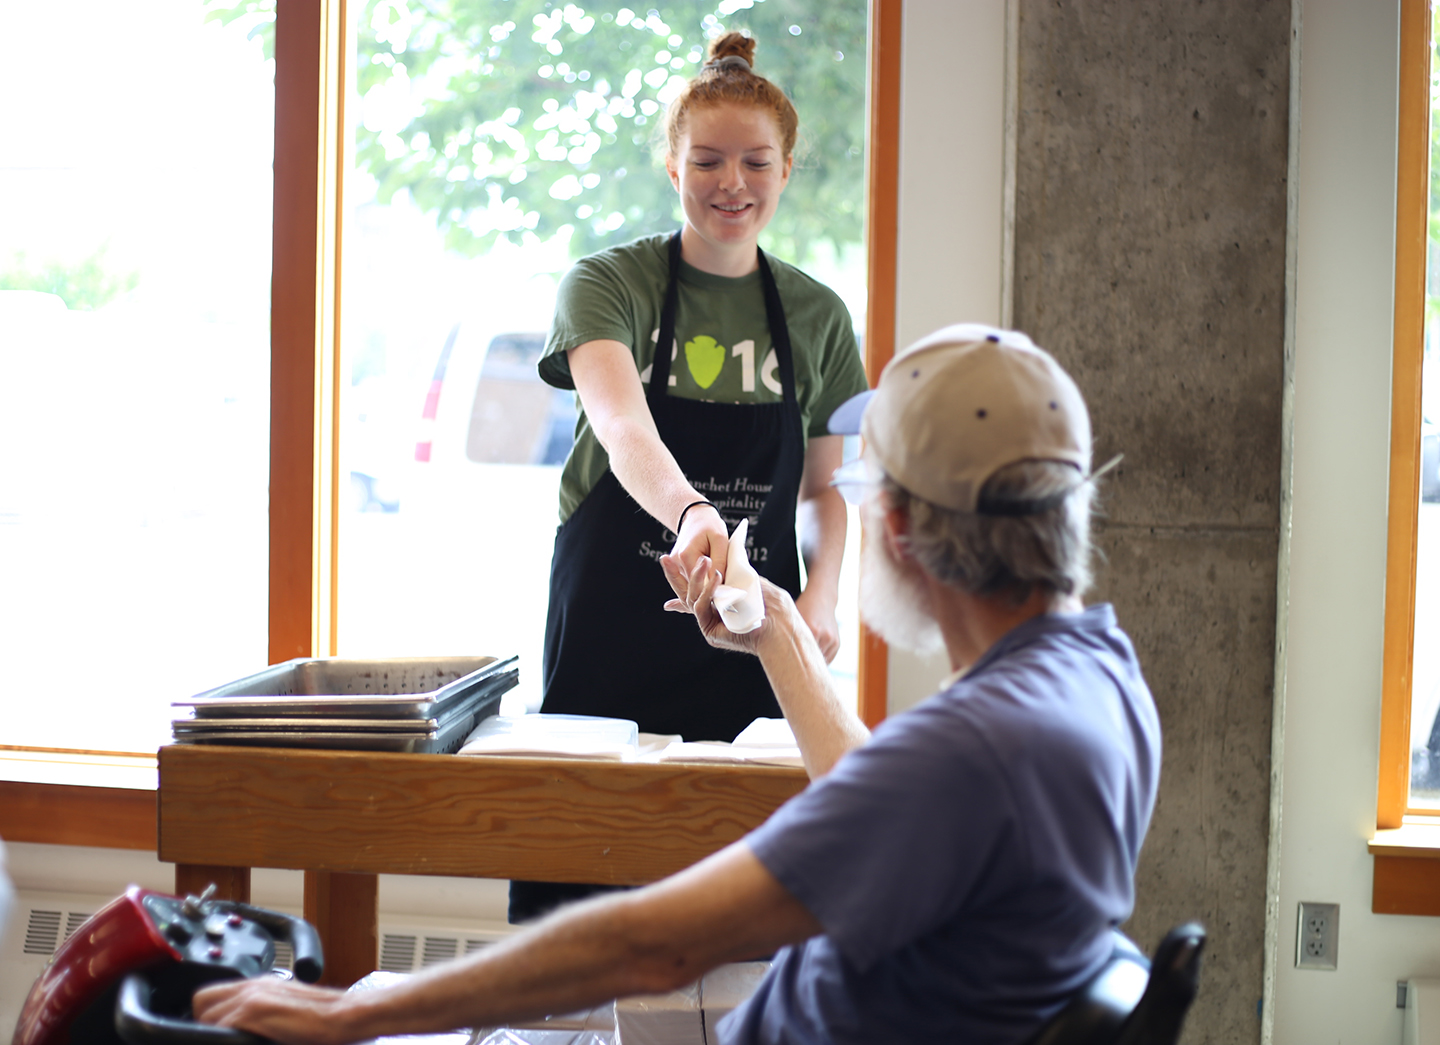 JVC/Americorps volunteer Emily Reiling handing a fork to a meal guest at Blanchet House.